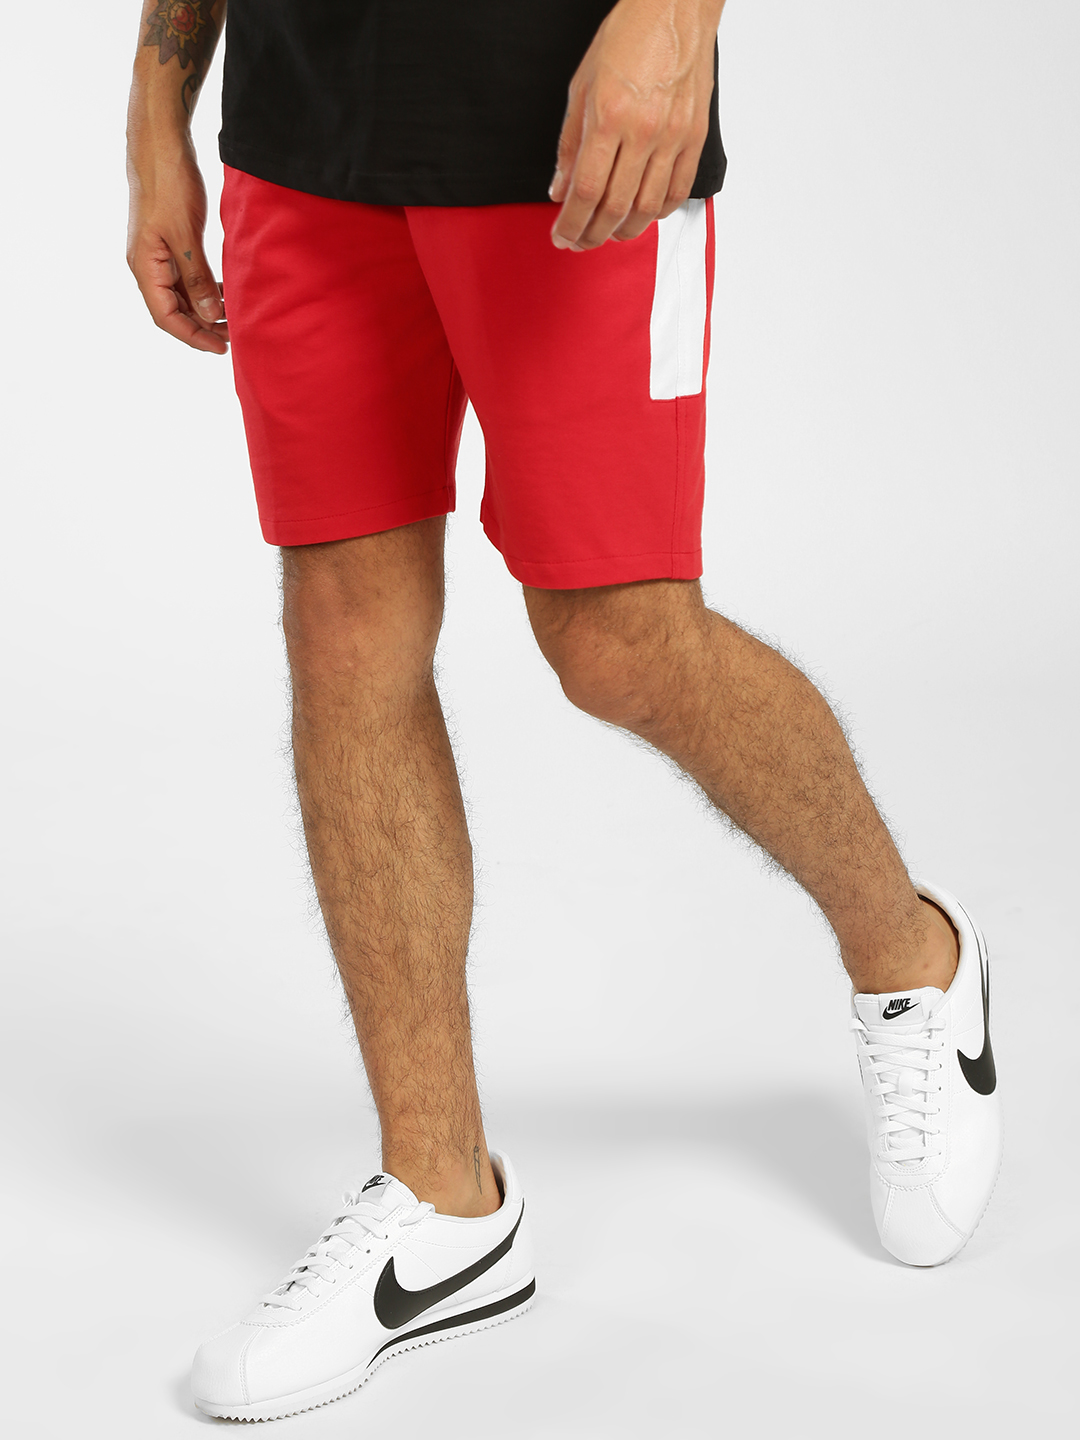 Tiktauli Red Contrast Side Panel Shorts 1